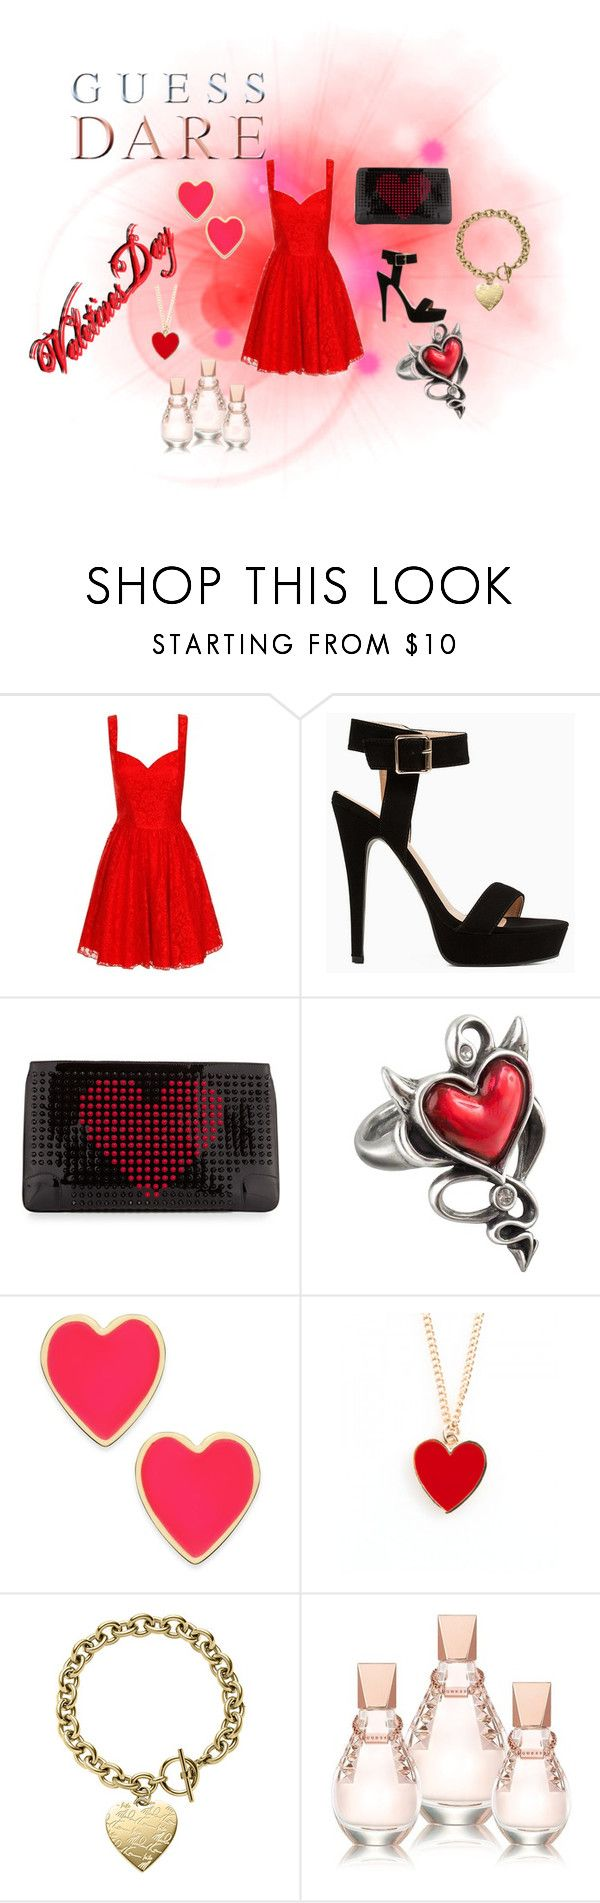 Heat Up Your Valentine's Day with GUESS DARE: Contest Entry by kelly17-kalymnos on Polyvore featuring Chi Chi, Stella Luna, Christian Louboutin, Kate Spade, Michael Kors, ban.do and GUESS